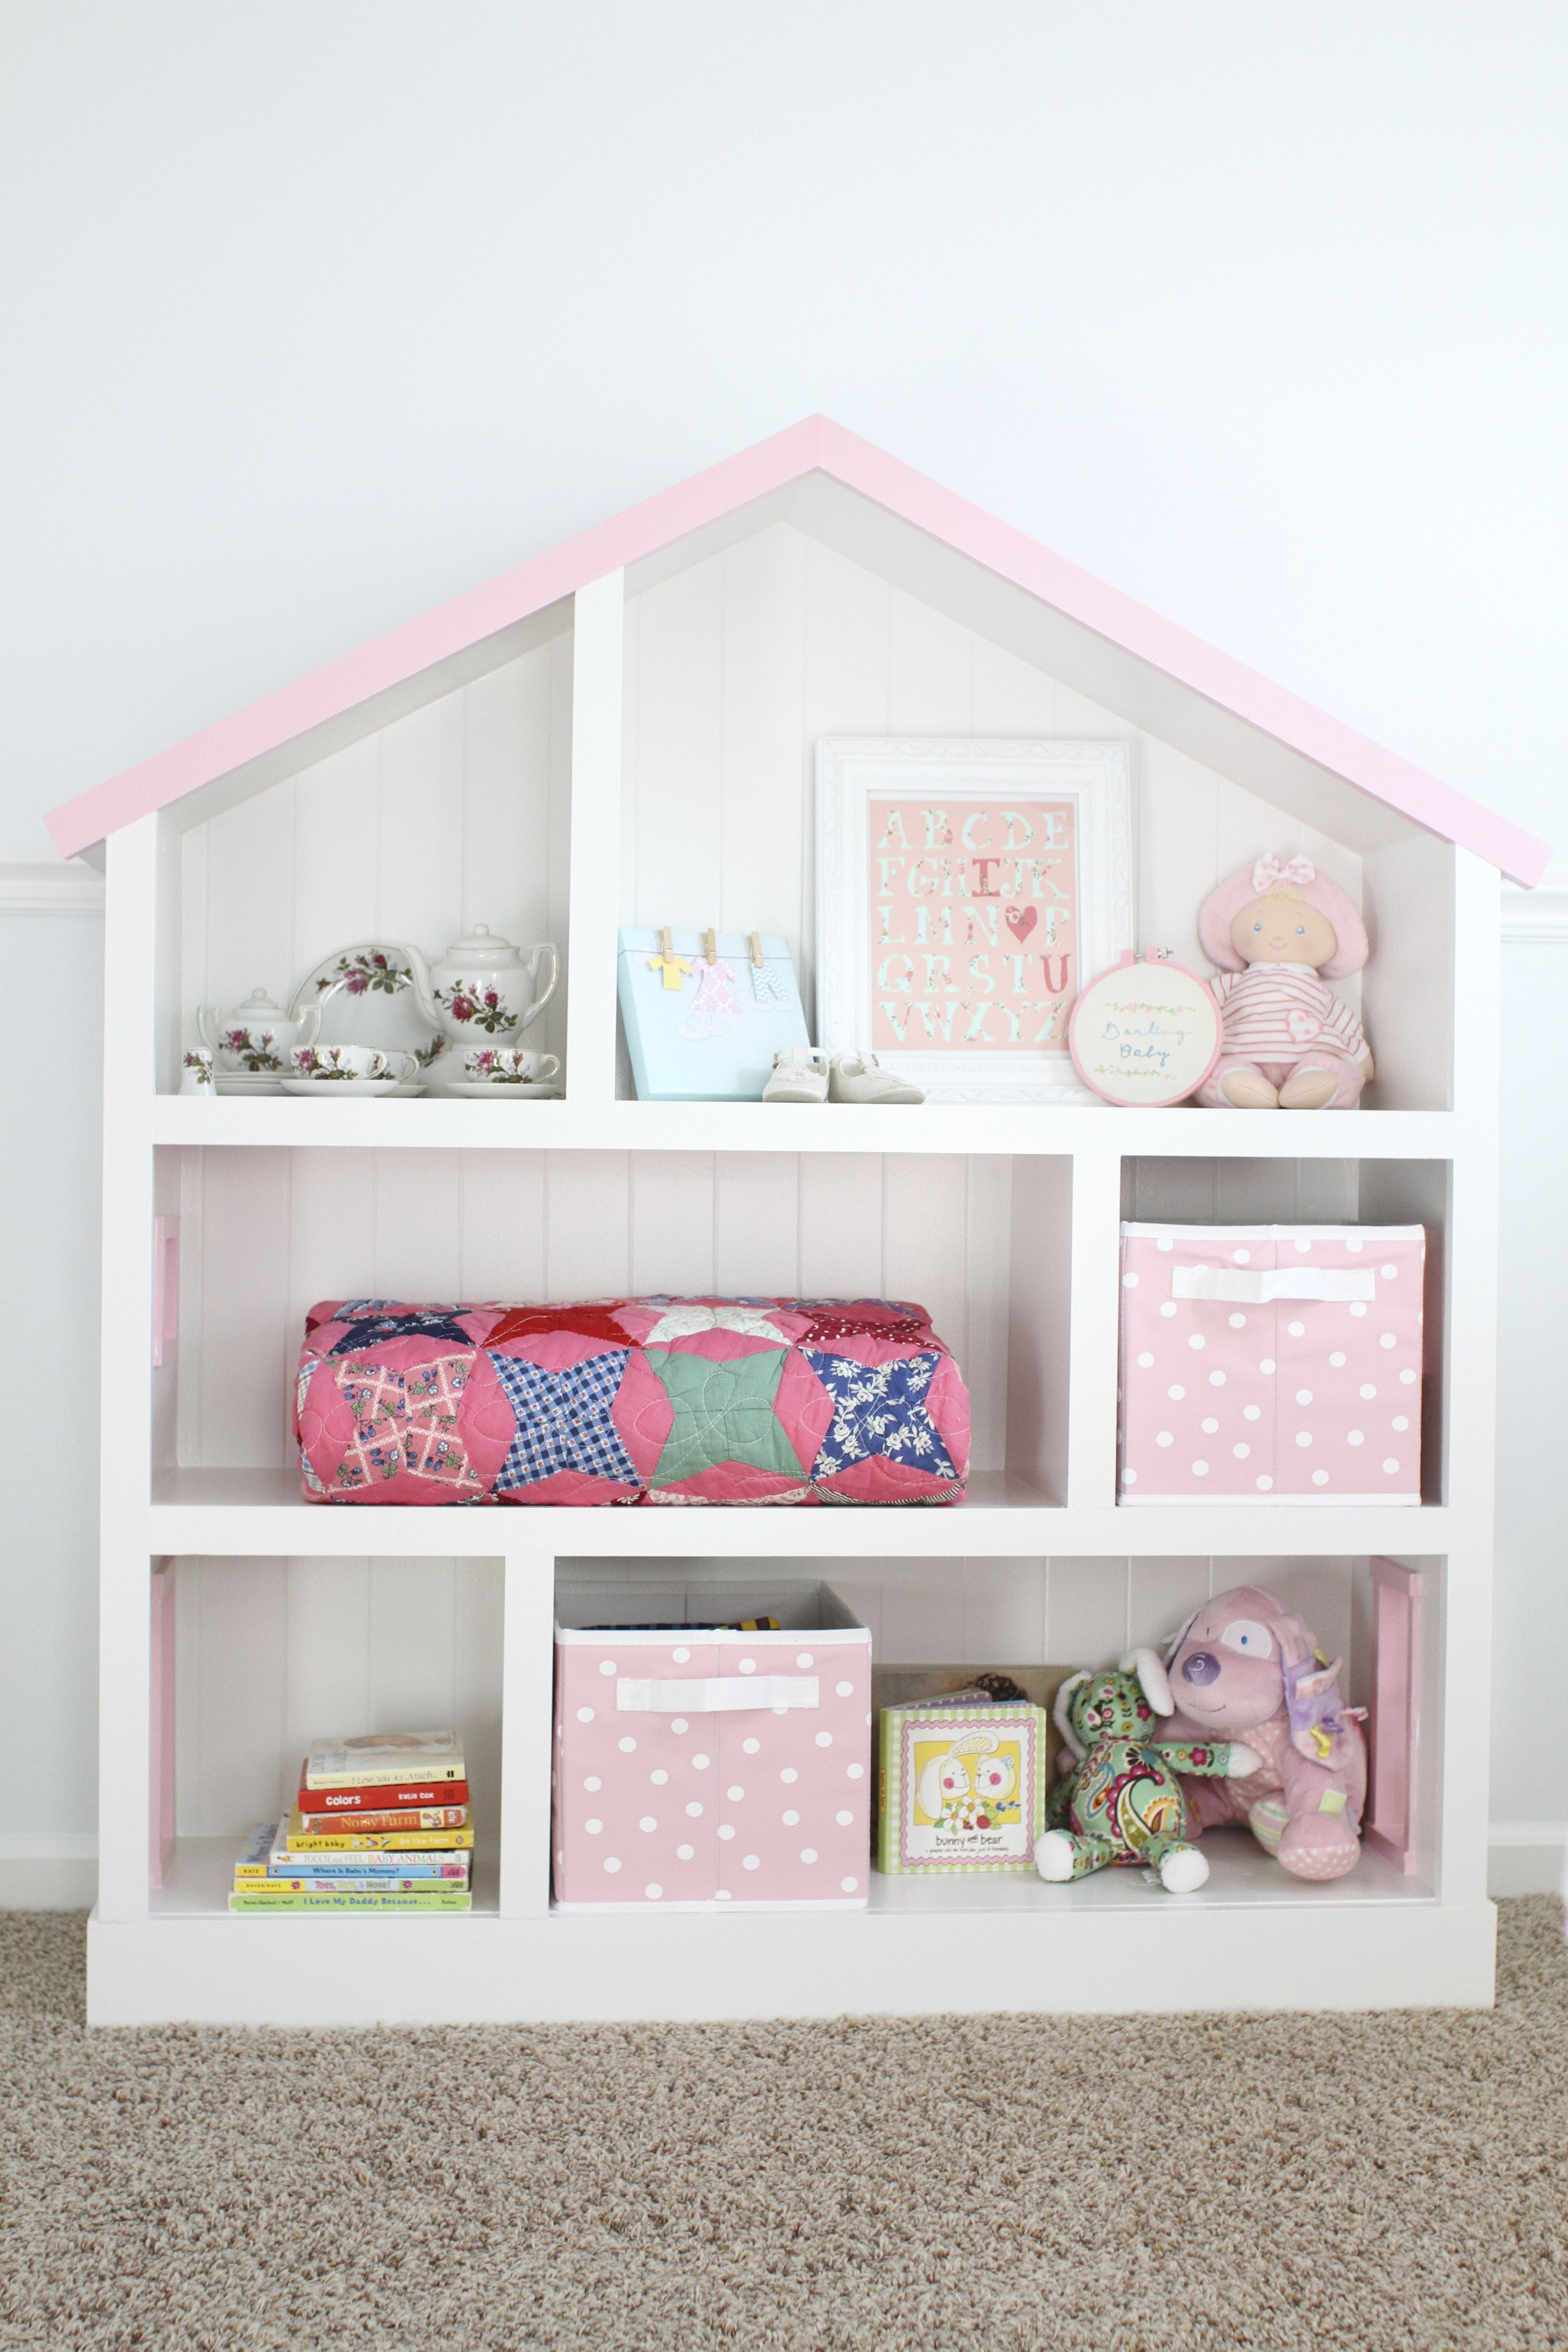 house bookshelf playrooms tutorials and bedrooms